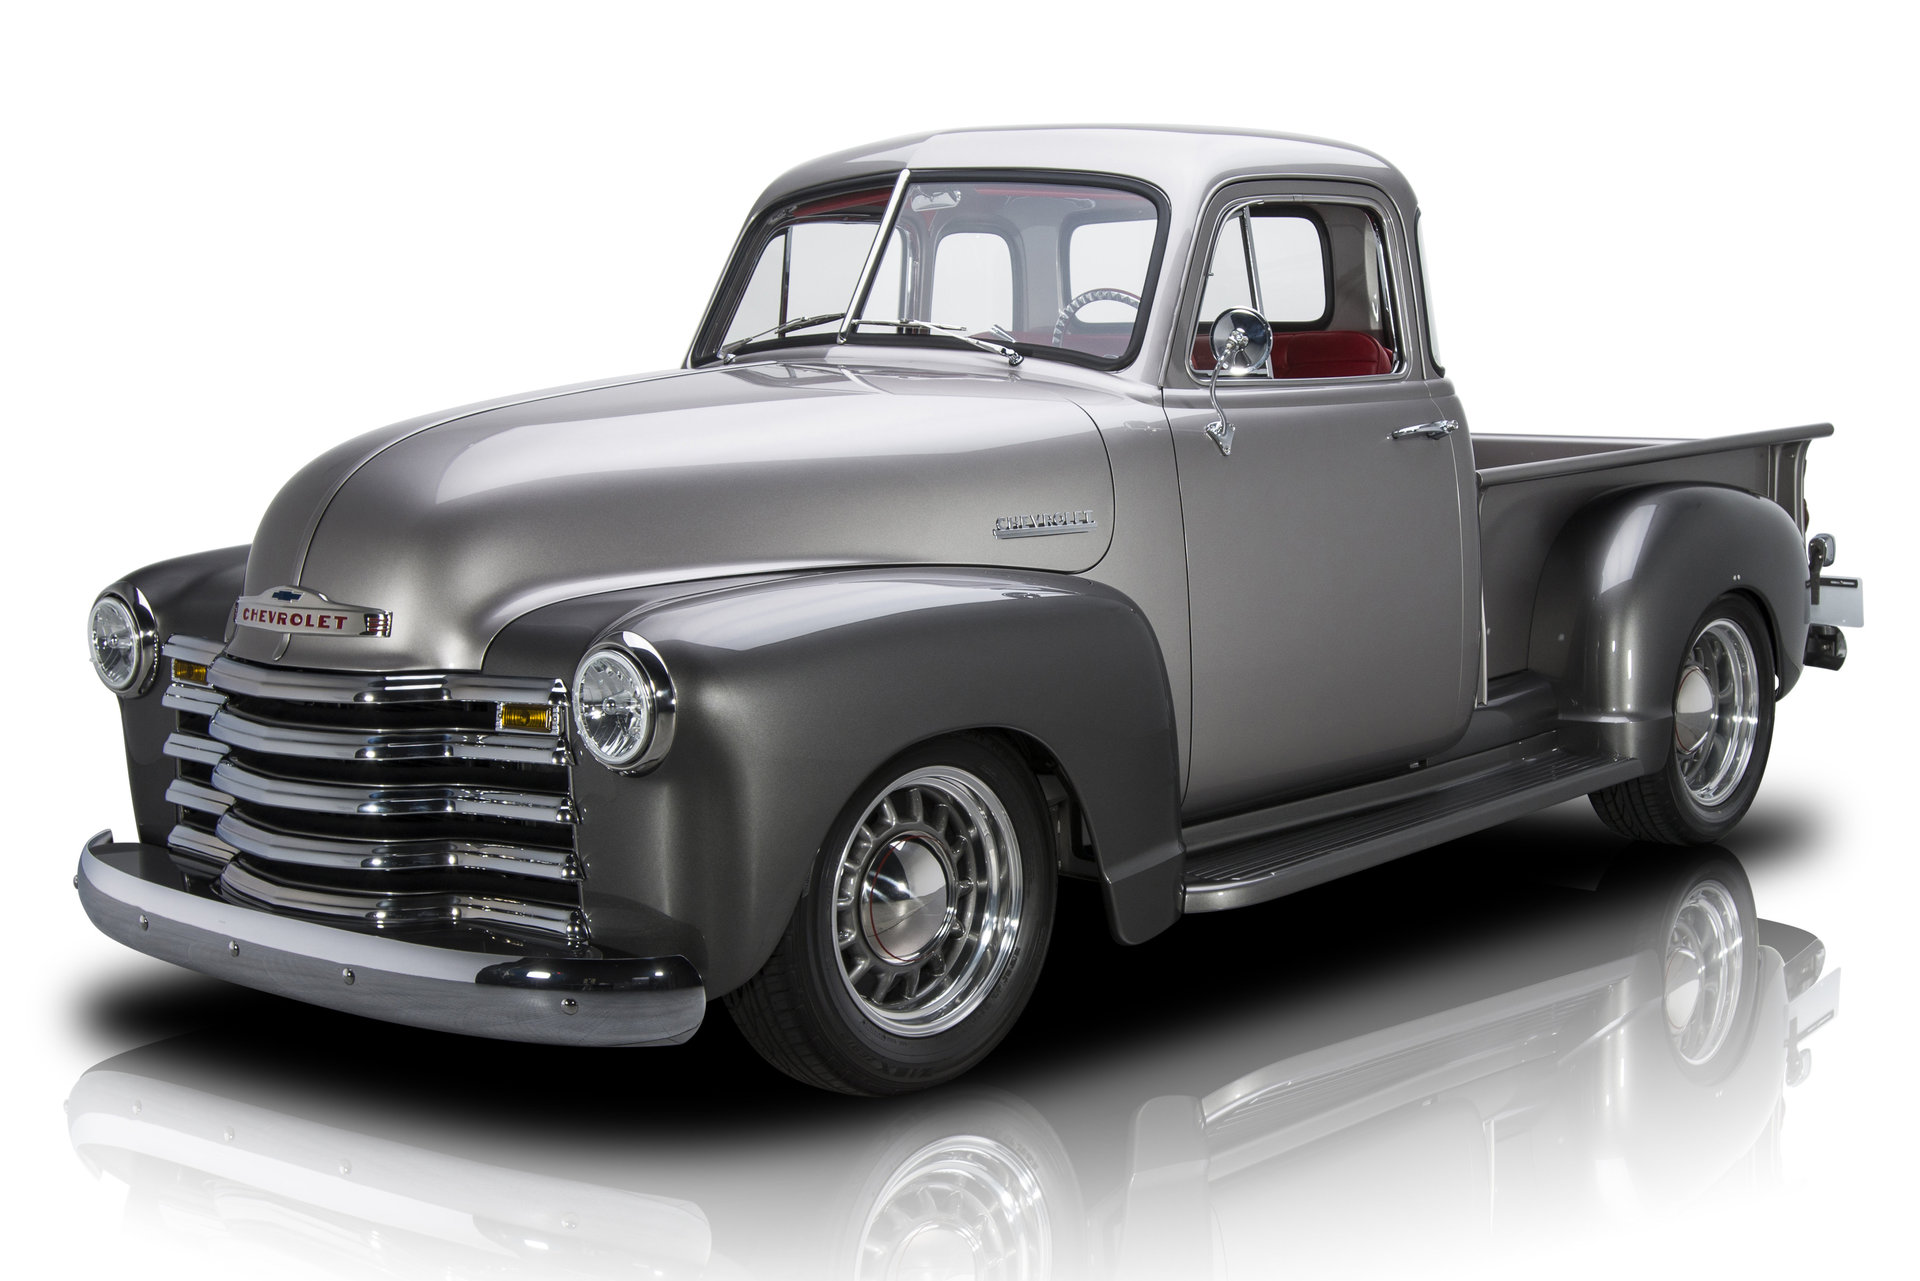 136137 1952 chevrolet 3100 rk motors classic and for Old black and white photos for sale